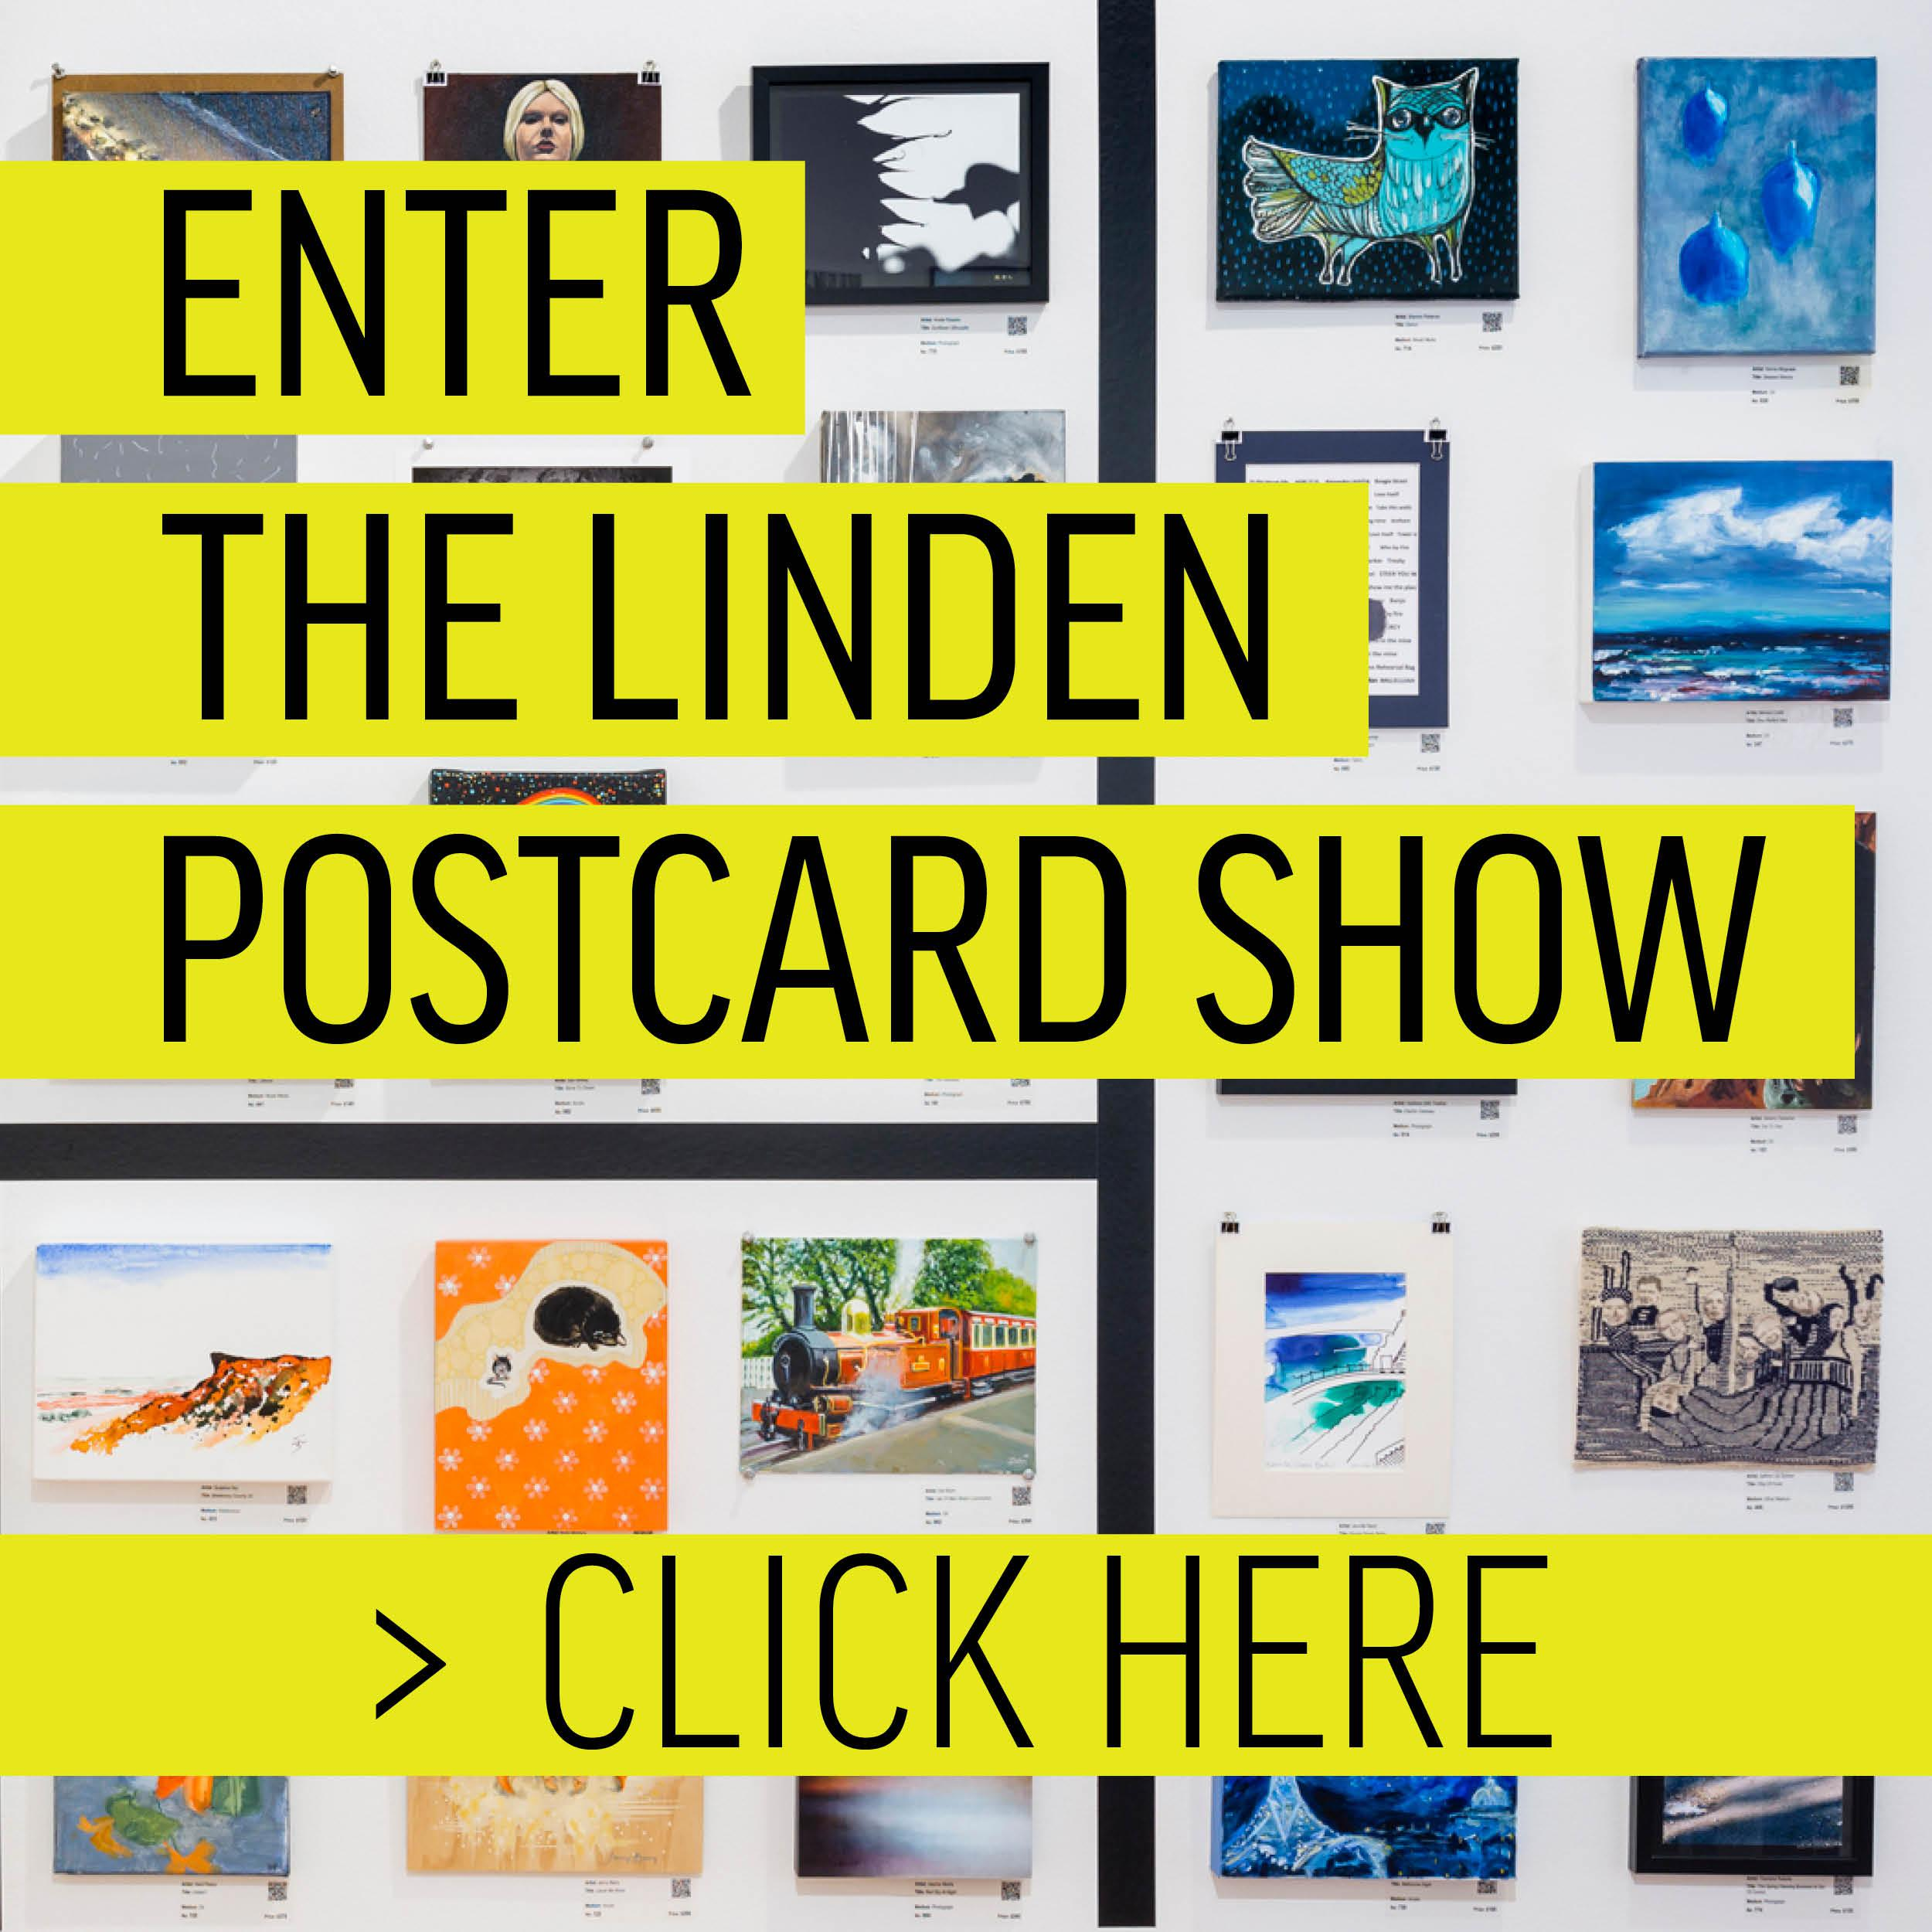 Enter the Linden Postcard Show 2018-19